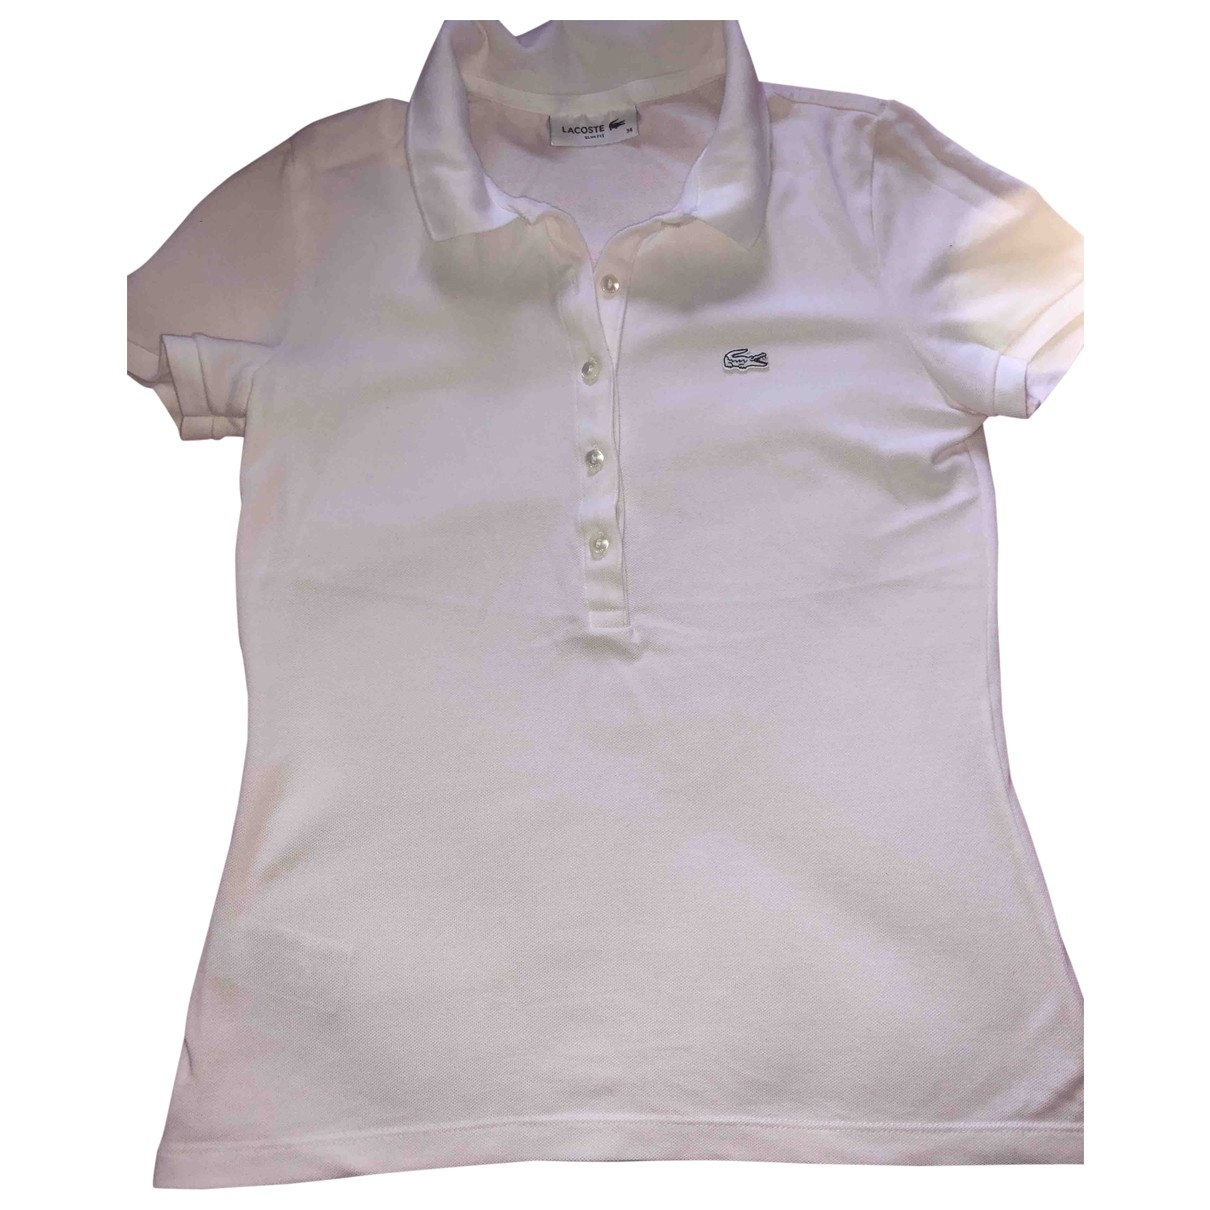 Lacoste \N White Cotton  top for Women 34 FR